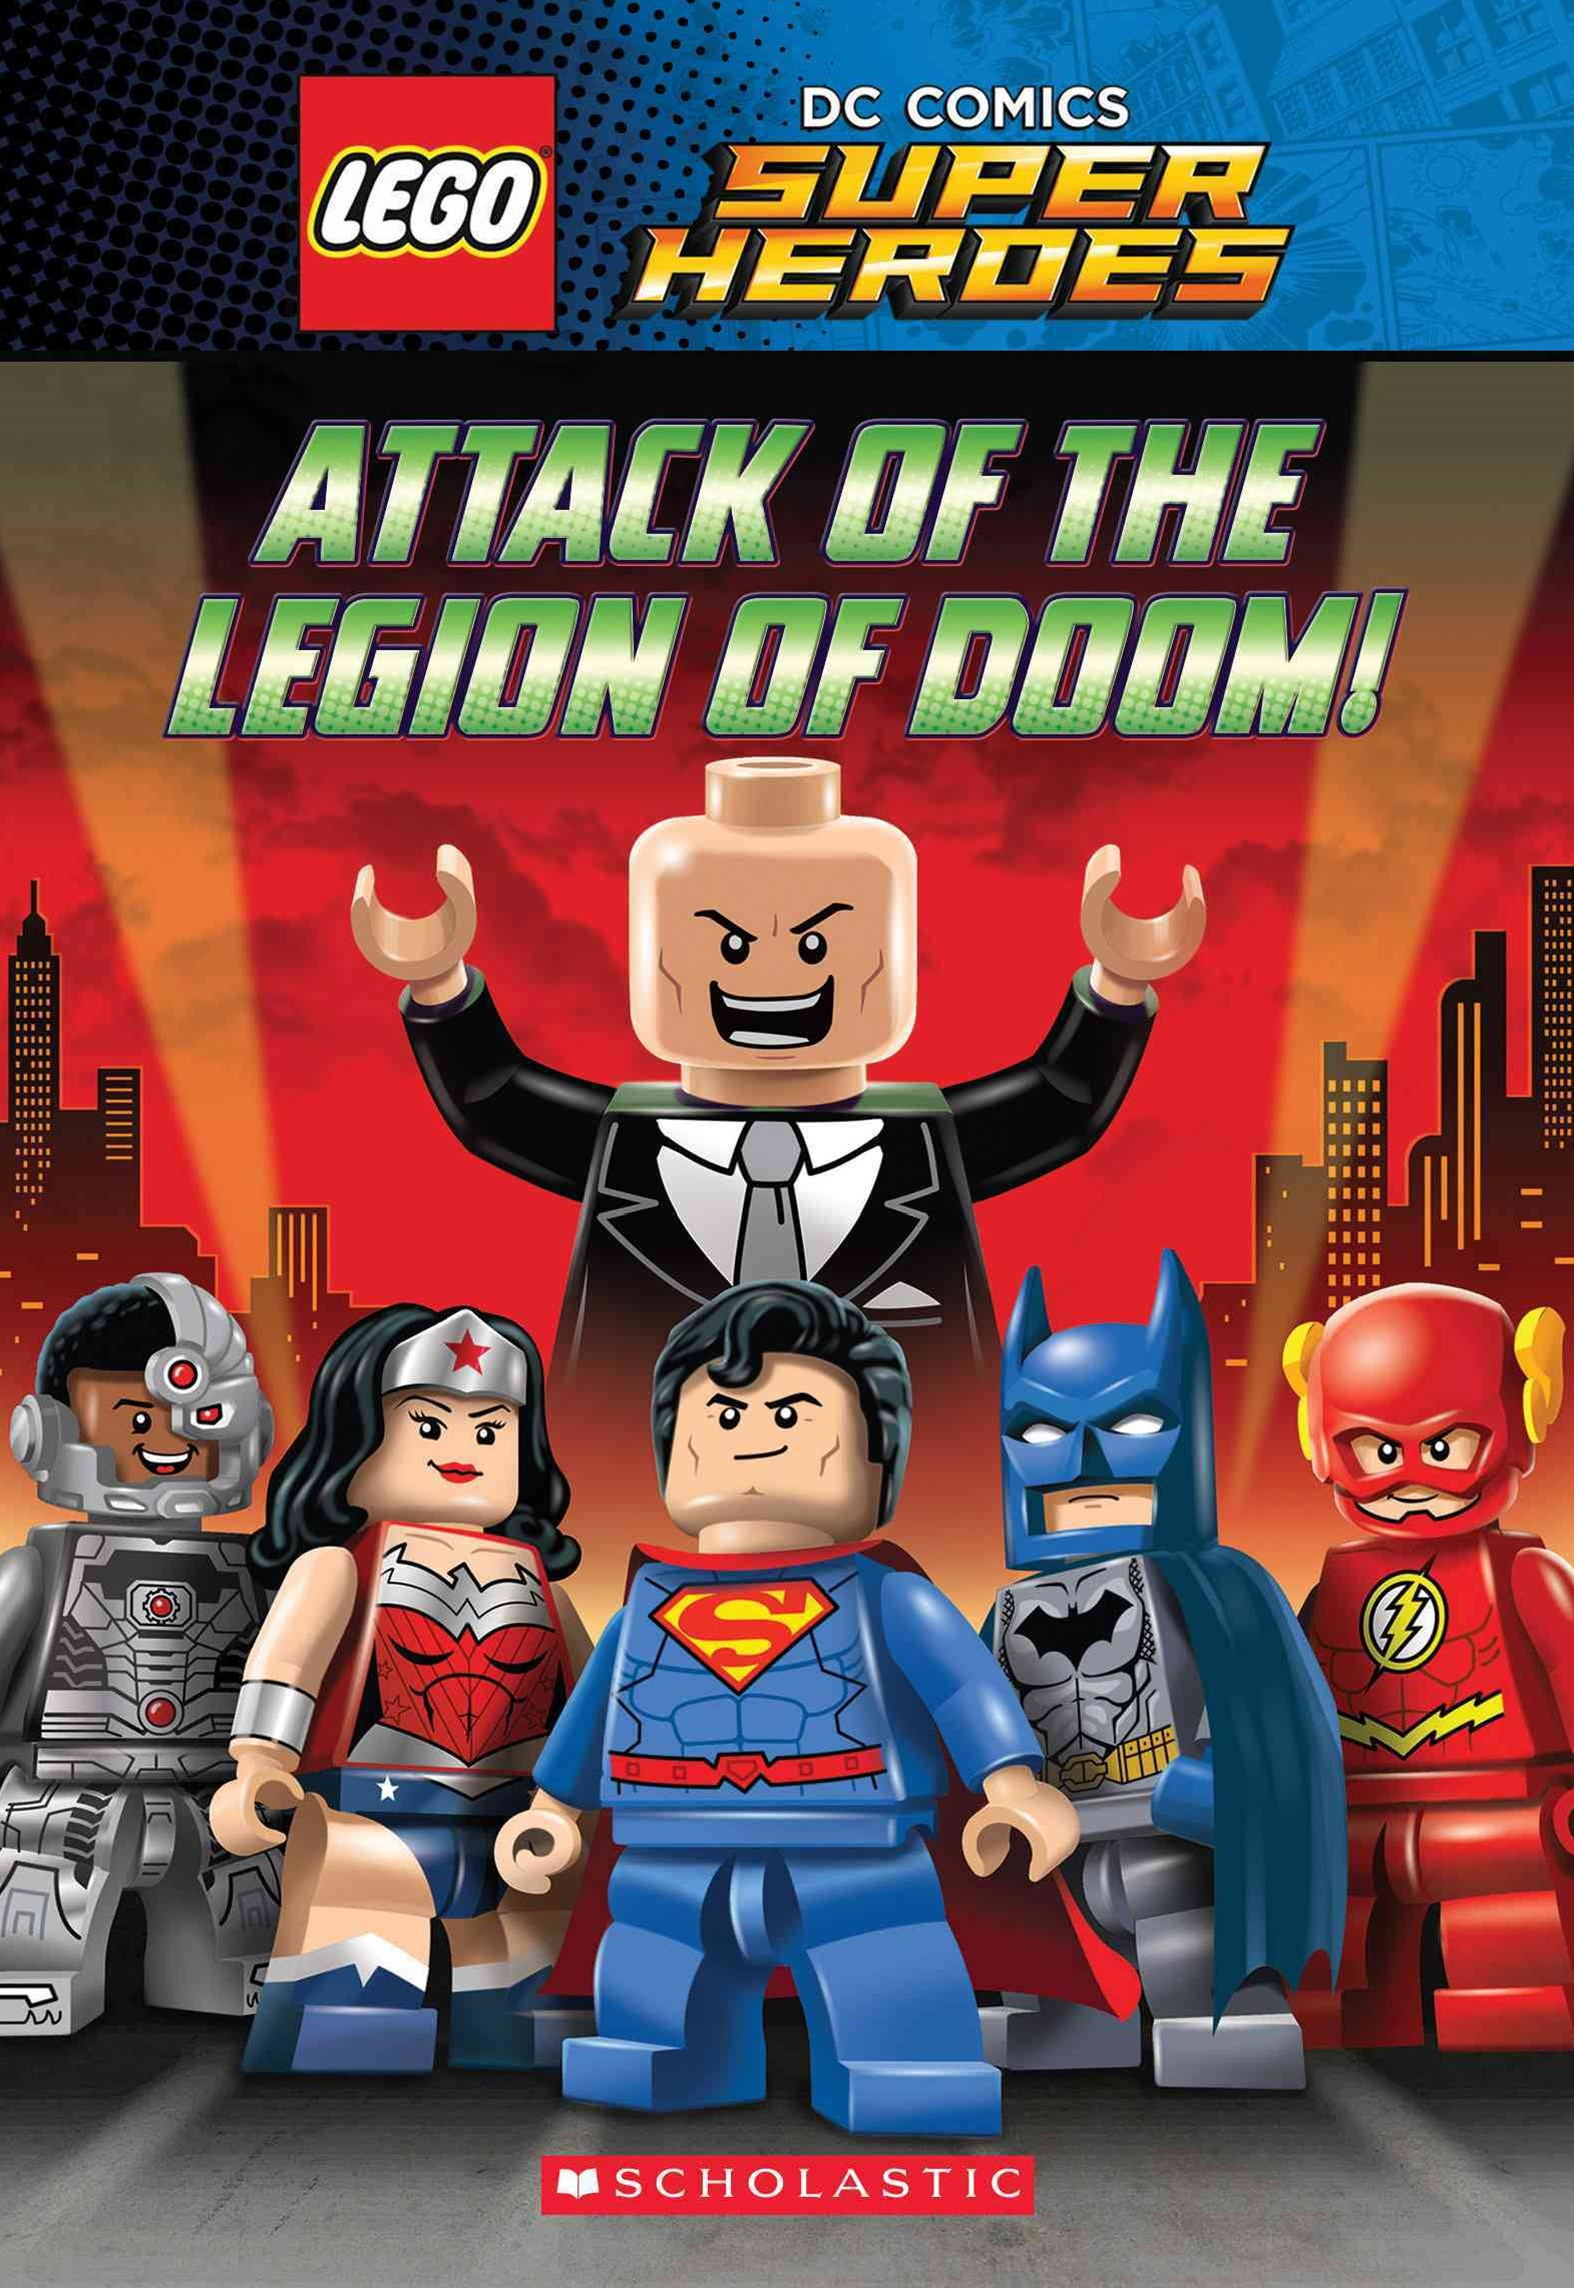 LEGO DC Comics Super Heroes: #2 Attack of the Legion of Doom!